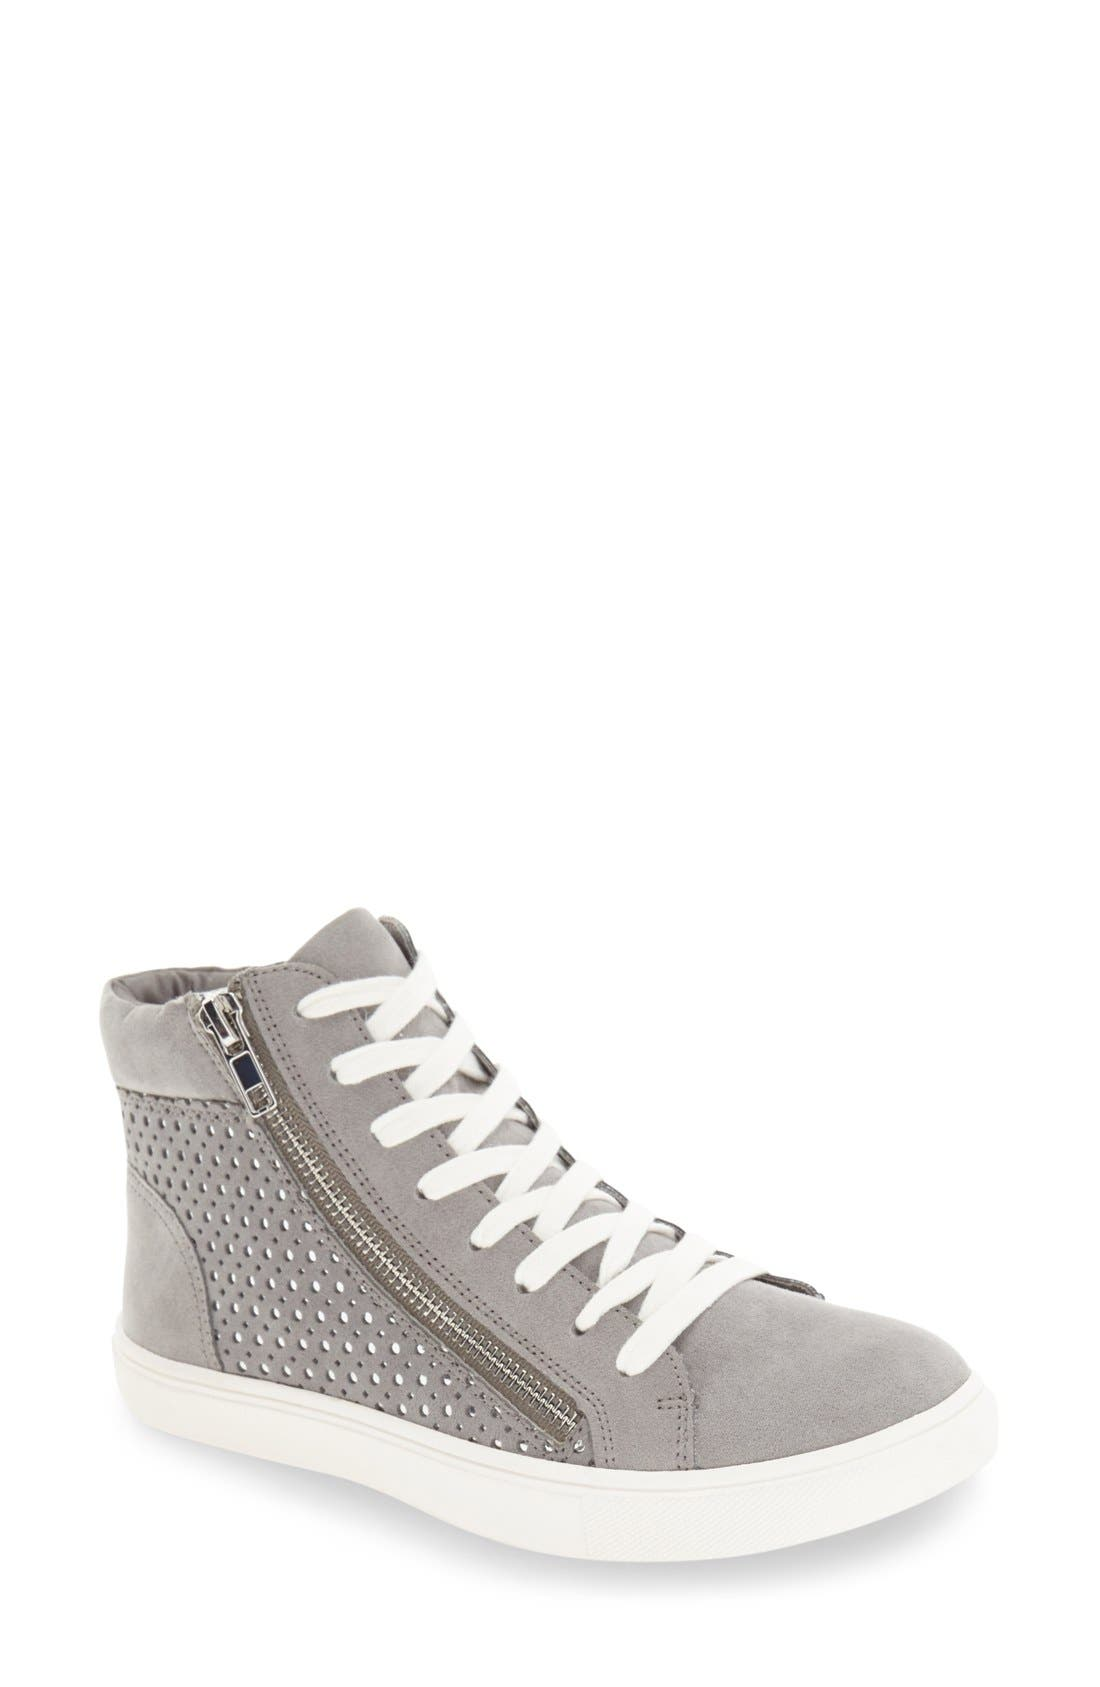 Main Image - Steve Madden 'Elyka' Laser Cut High Top Sneaker (Women)